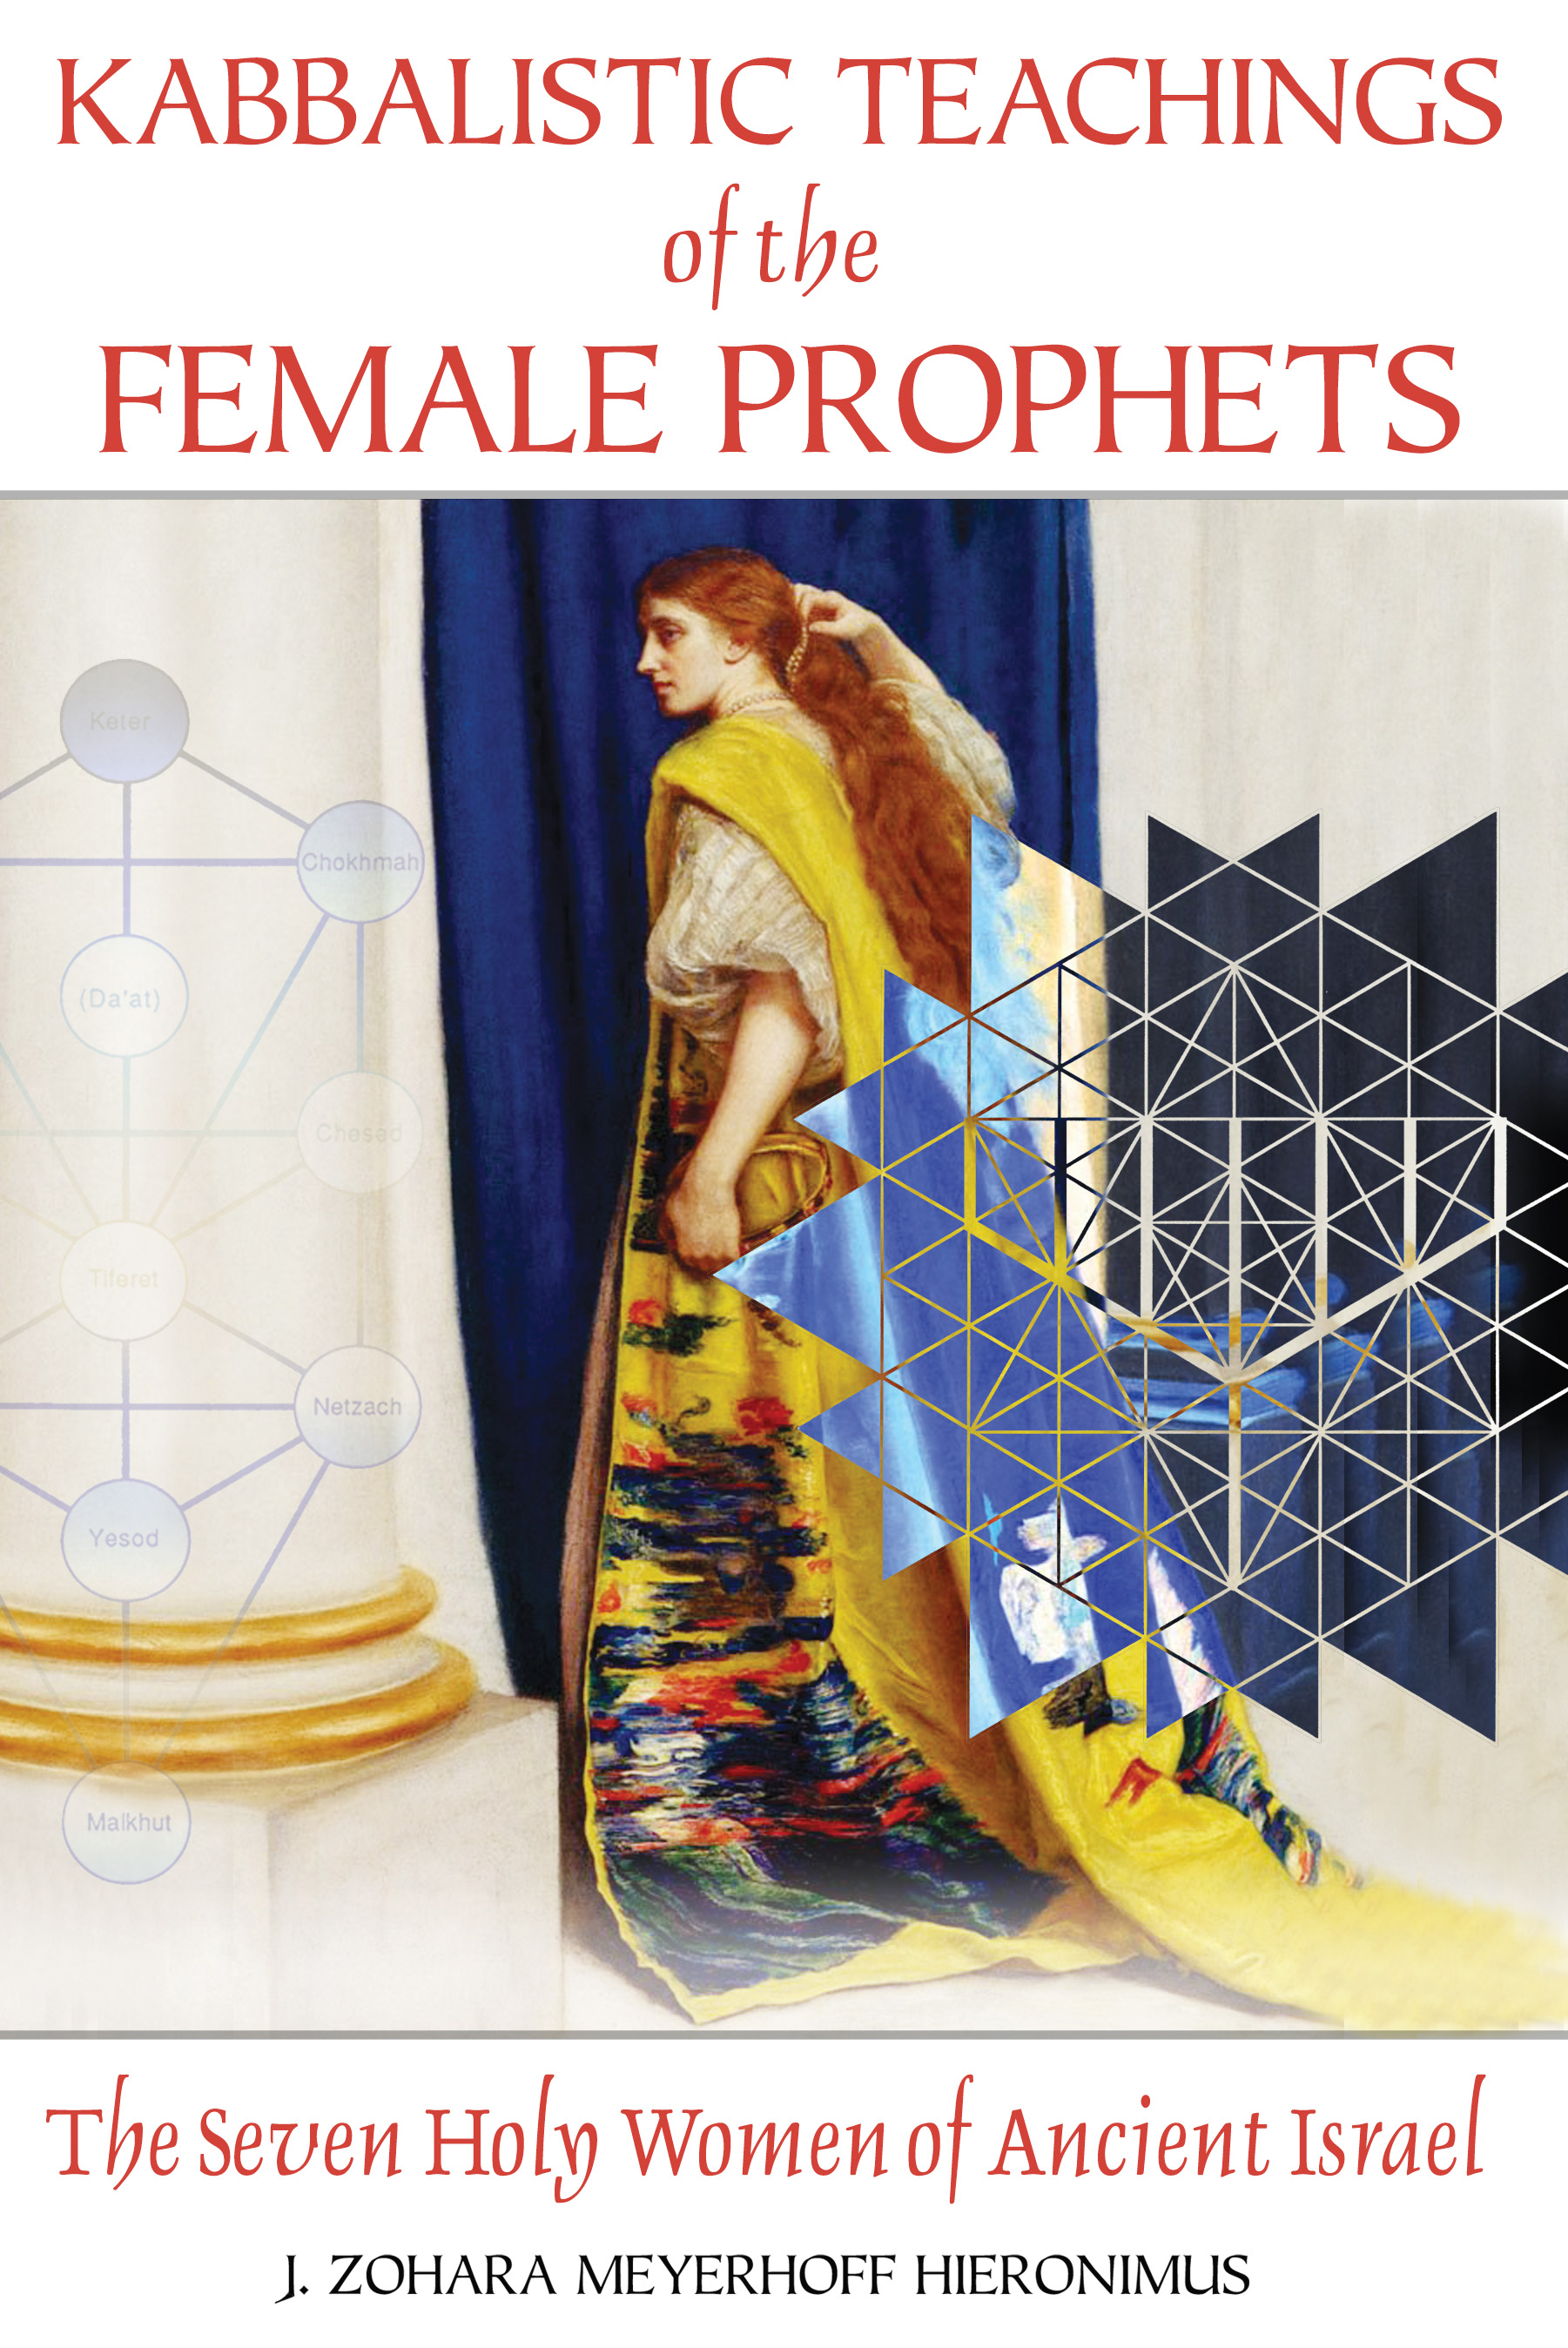 Kabbalistic Teachings of the Female Prophets, The Seven Holy Women of Ancient Israel,